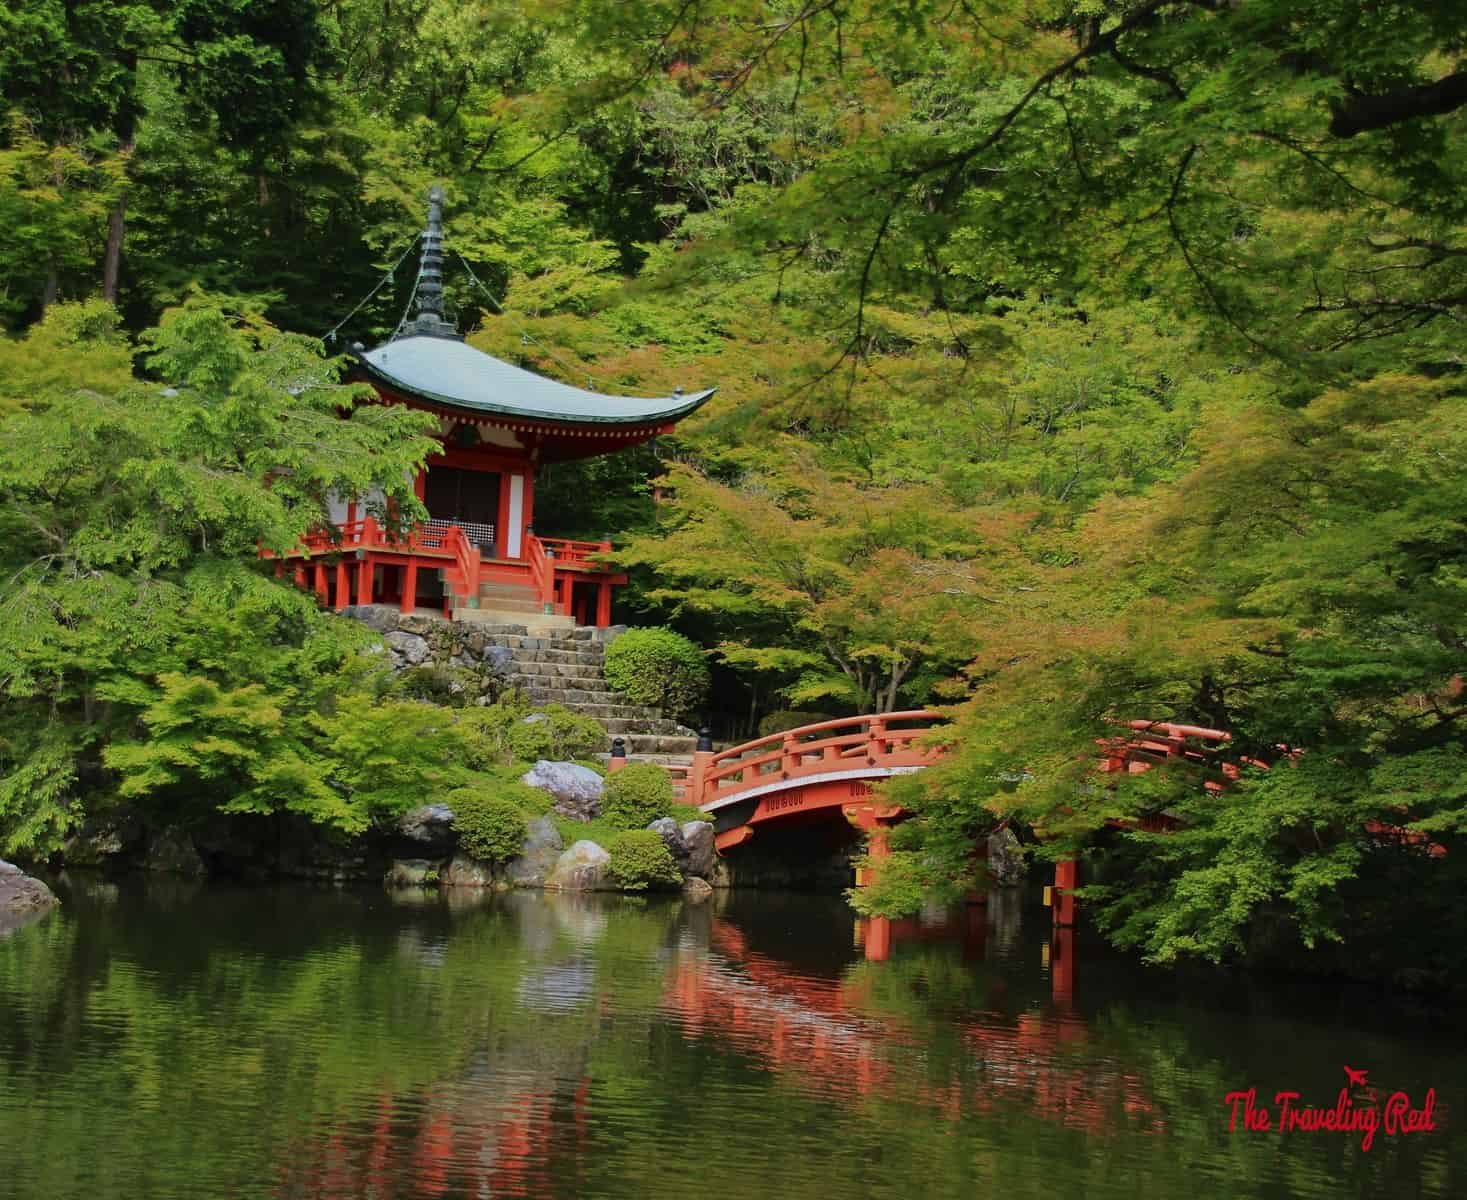 My favorite in Kyoto, Japan was Daigo-ji Temple, specifically Bentendo Hall. It is located on the outskirt of the city. Although it isn't one of the more significant temples, it is absolutely beautiful and worth visiting. Daigo-ji sits on a huge property, so expect to spend hours just walking around.